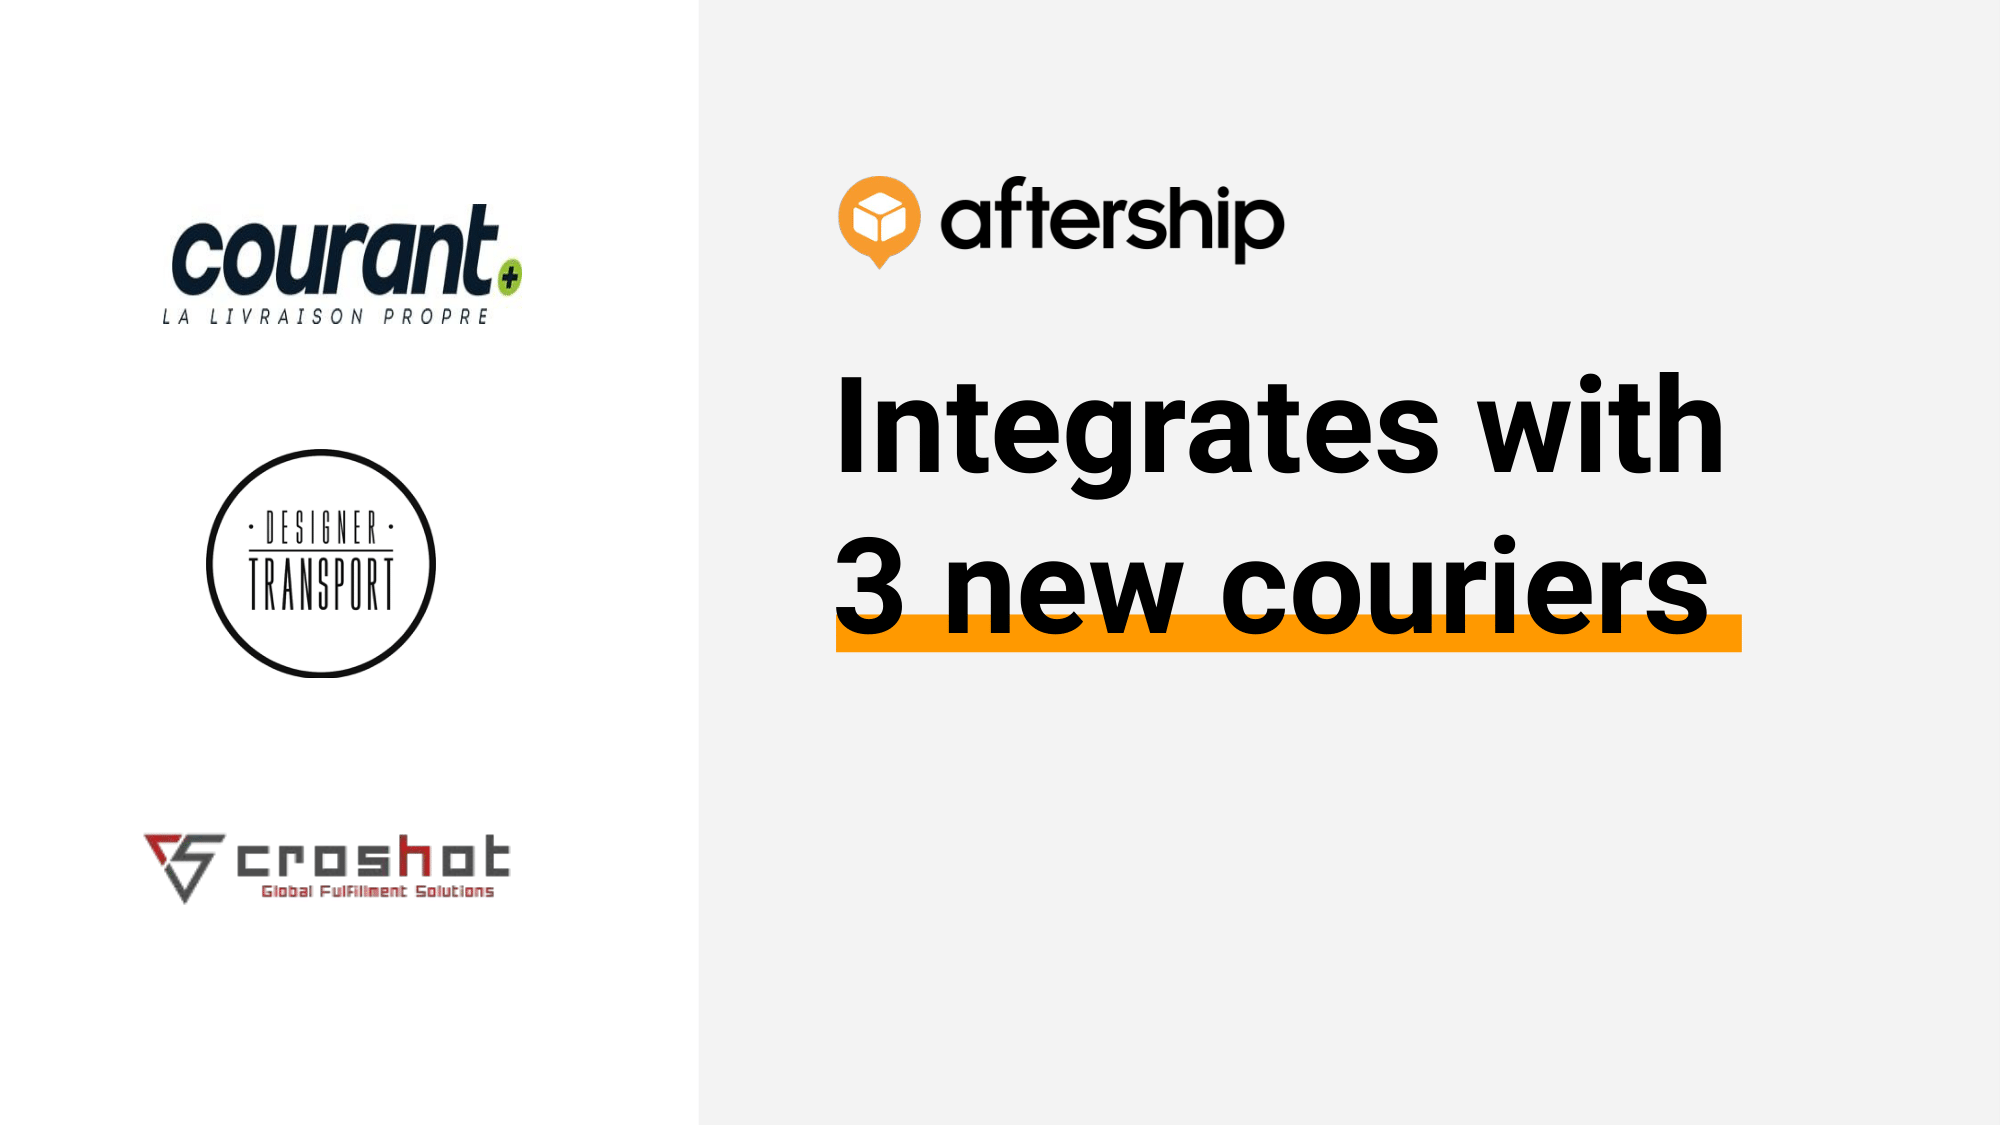 AfterShip adds 3 new couriers this week (31st August 2020 to 4th September 2020)